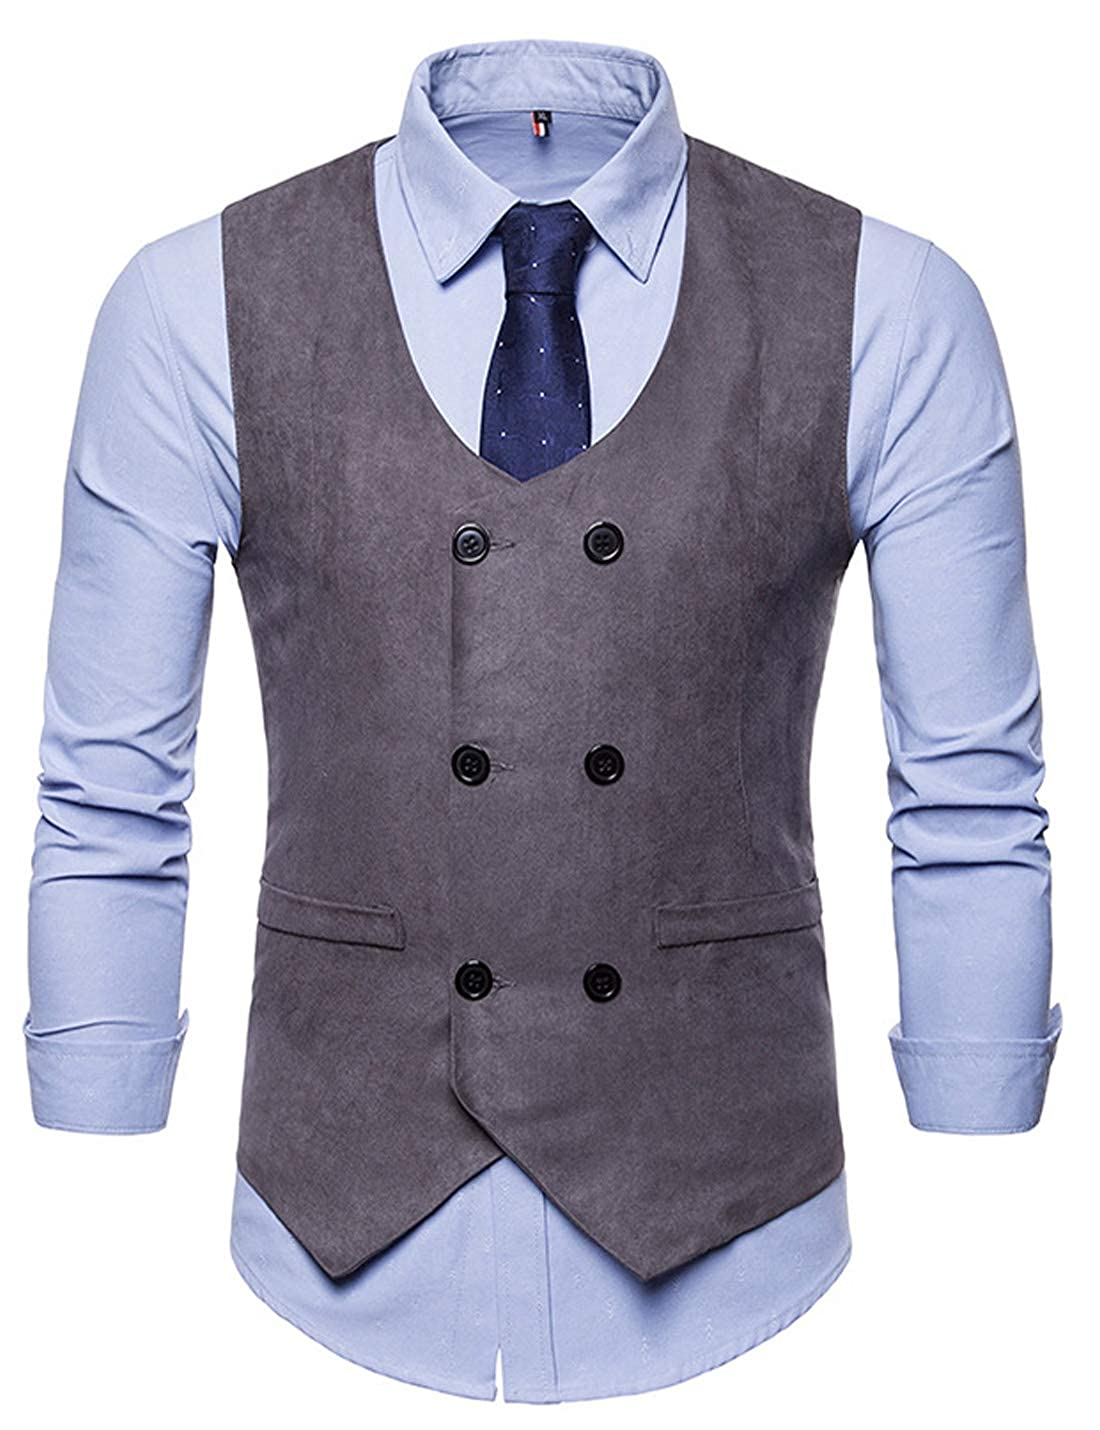 HUPOO Mens Slim V Neck Double Breasted Sleeveless Business Faux Suede Vests Waistcoats